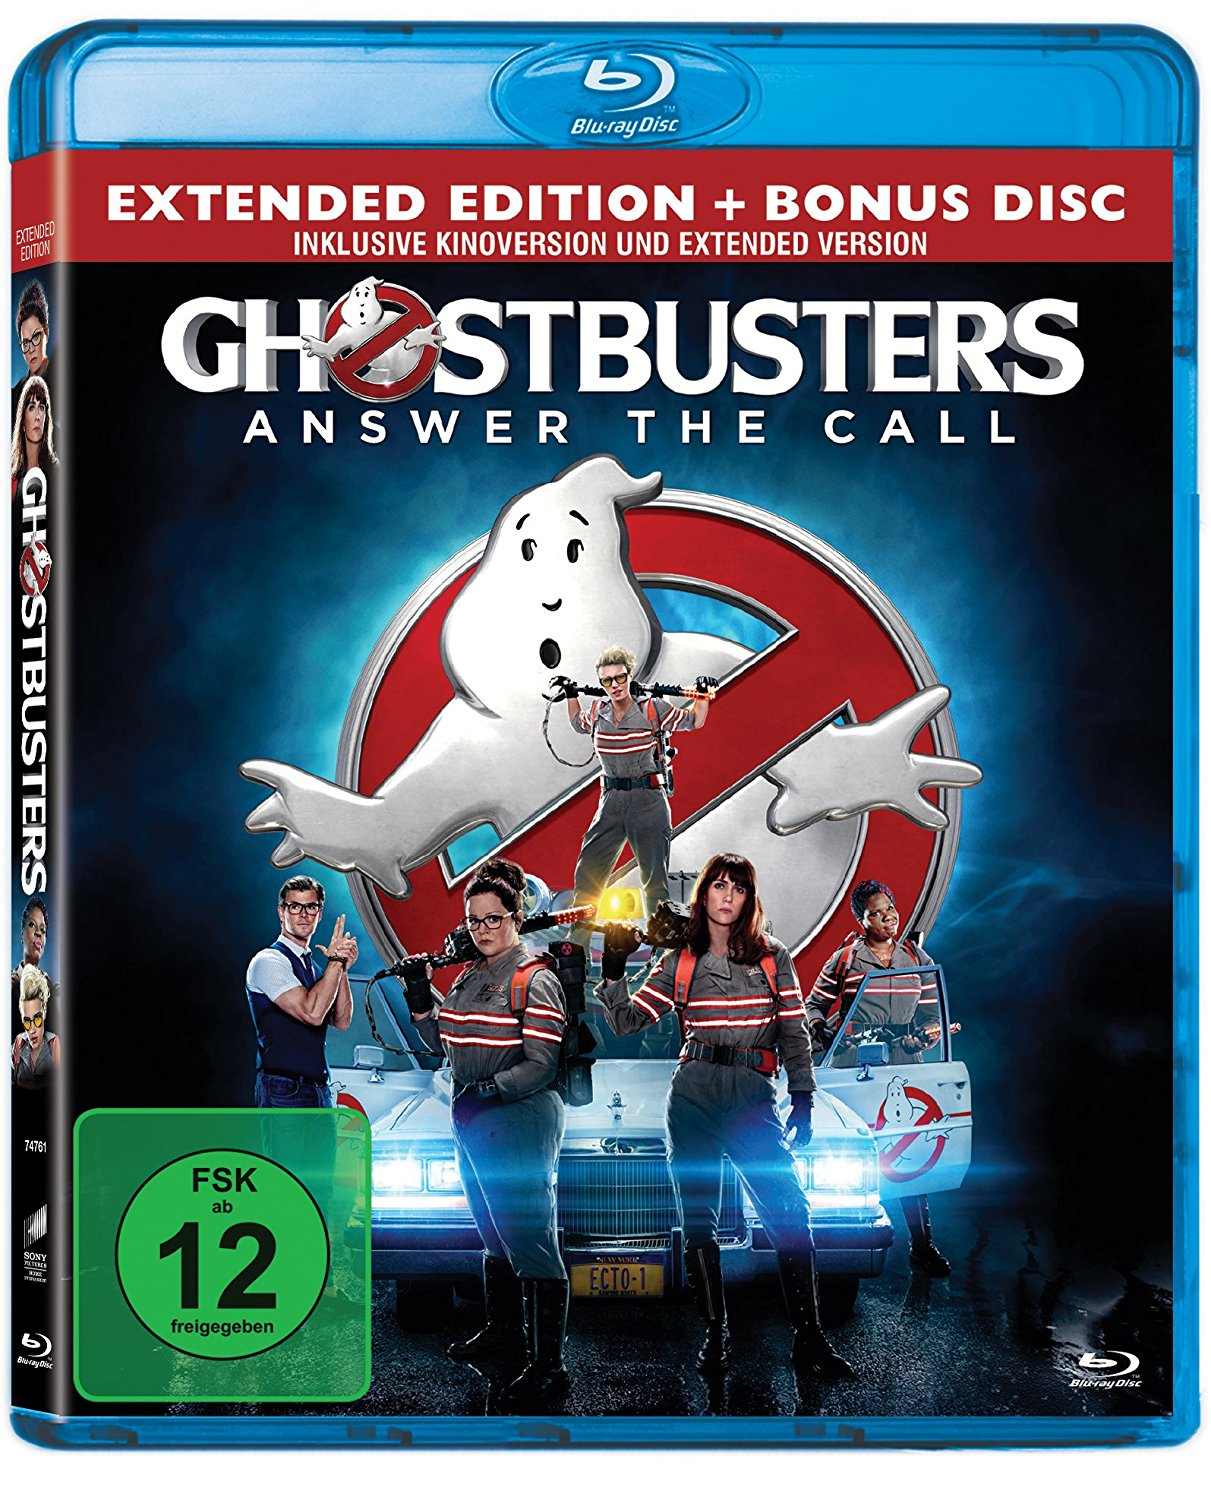 tagesangebot ghostbusters blu ray extended edition. Black Bedroom Furniture Sets. Home Design Ideas